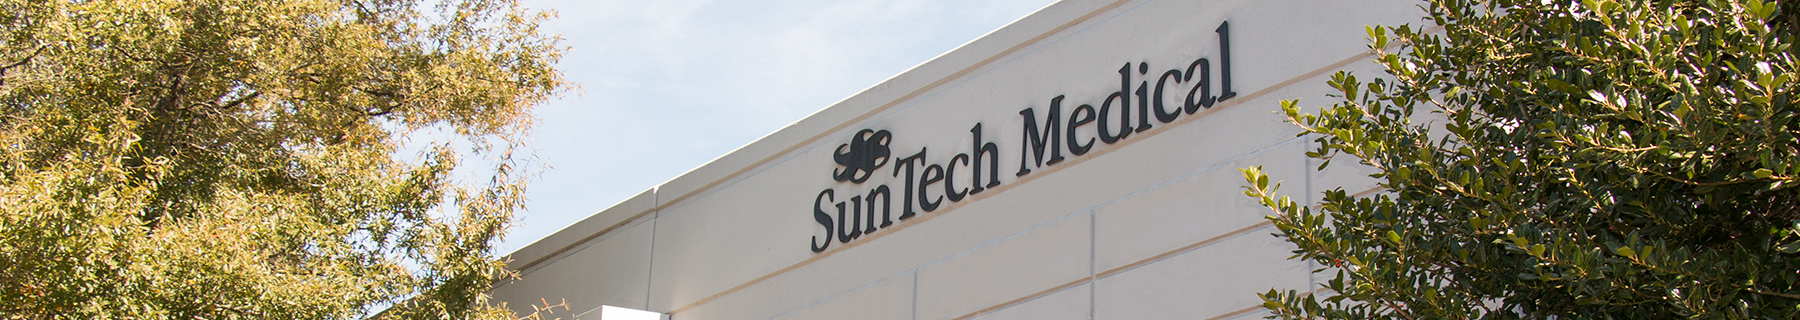 photo of SunTech Medical Headquarters in Morrisville, NC